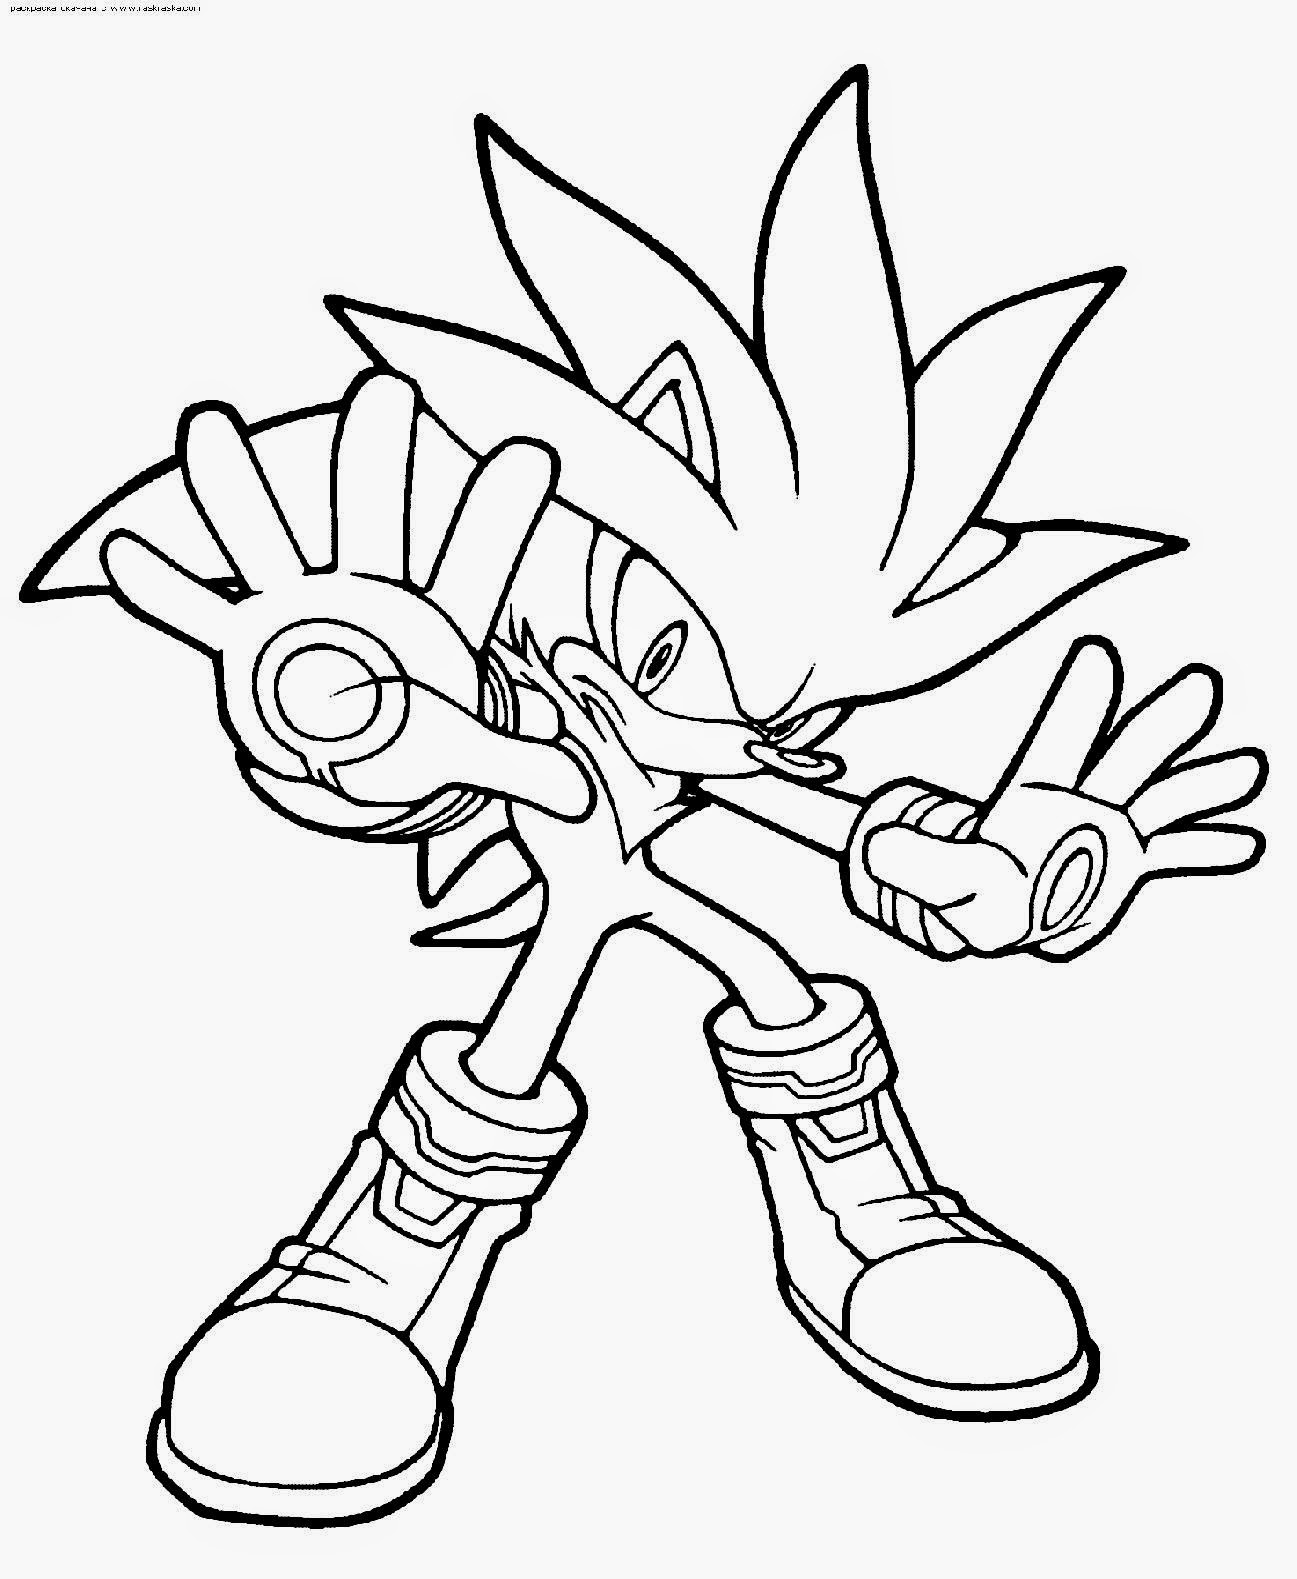 sonic x coloring pages sonic x coloring pages coloring x pages sonic